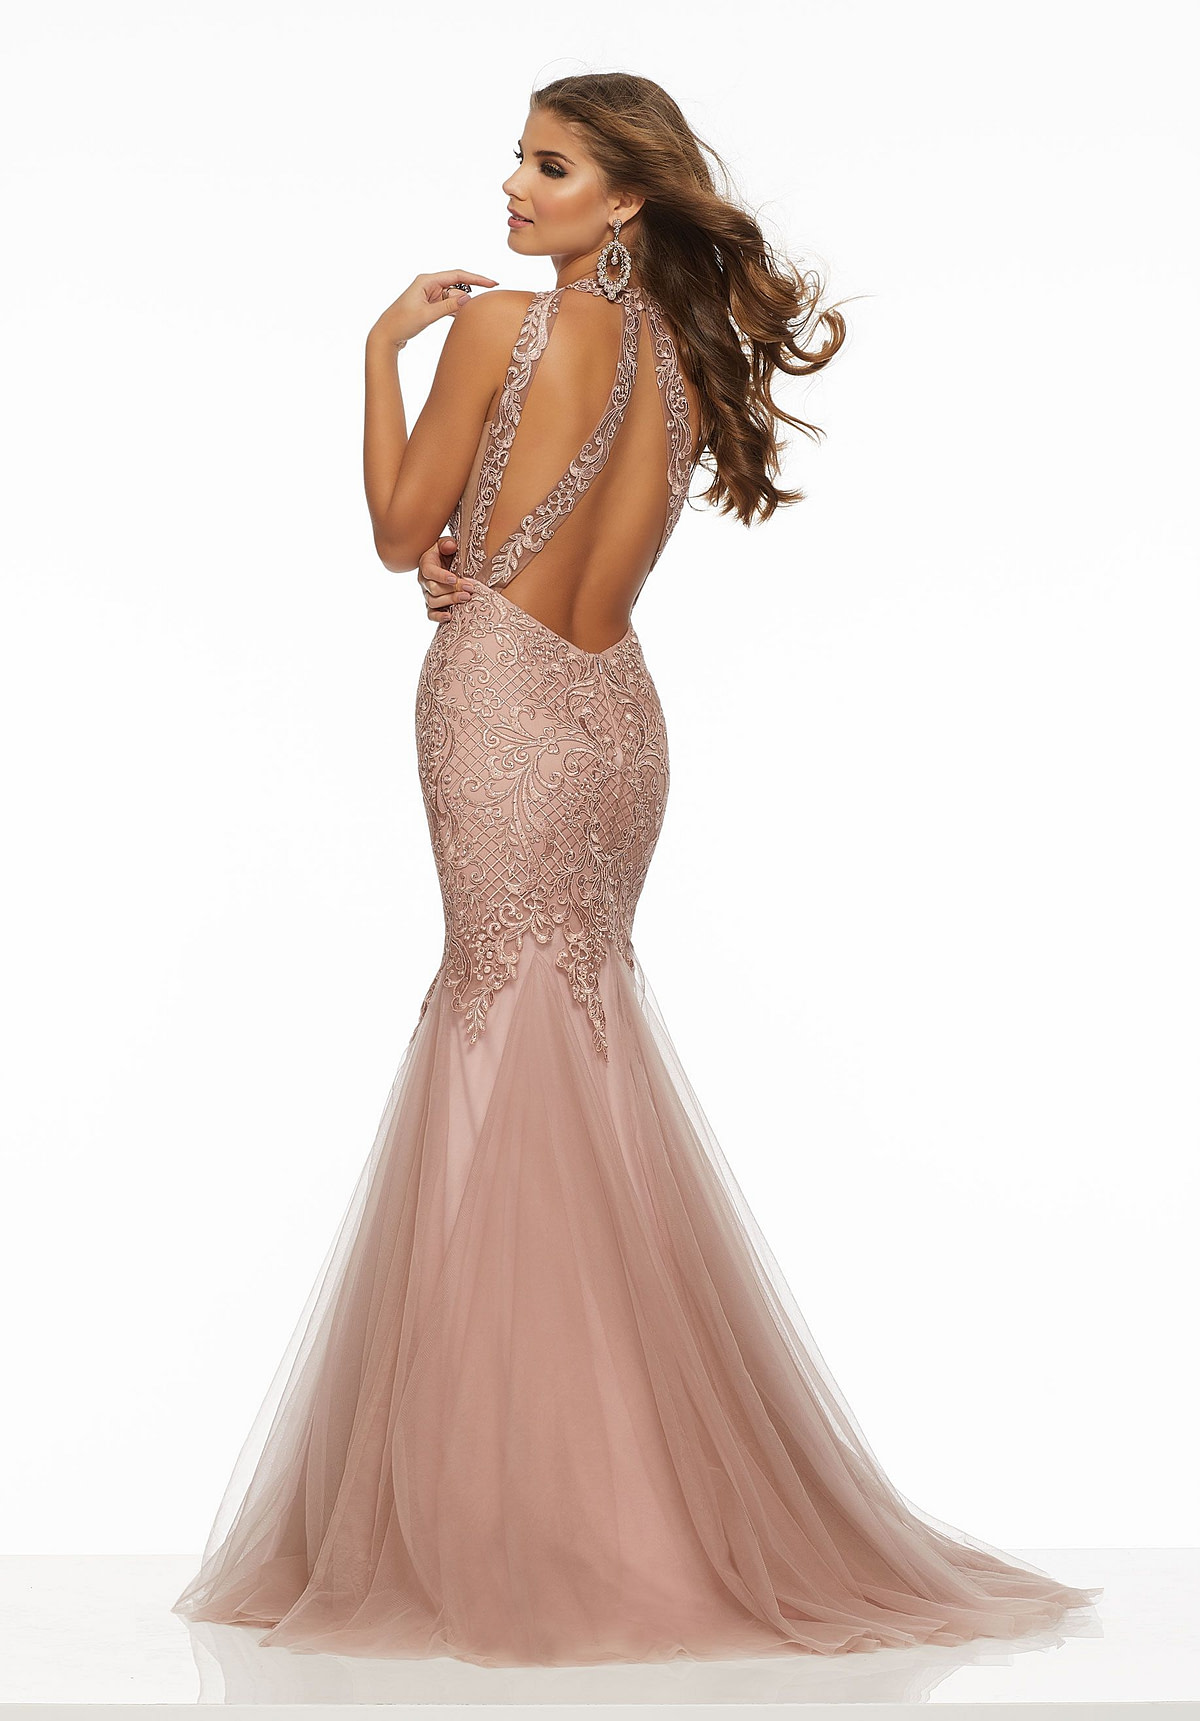 mori-lee-prom-available-at-spotlight-formal-wear-spotlightprom-1200x1721.jpg